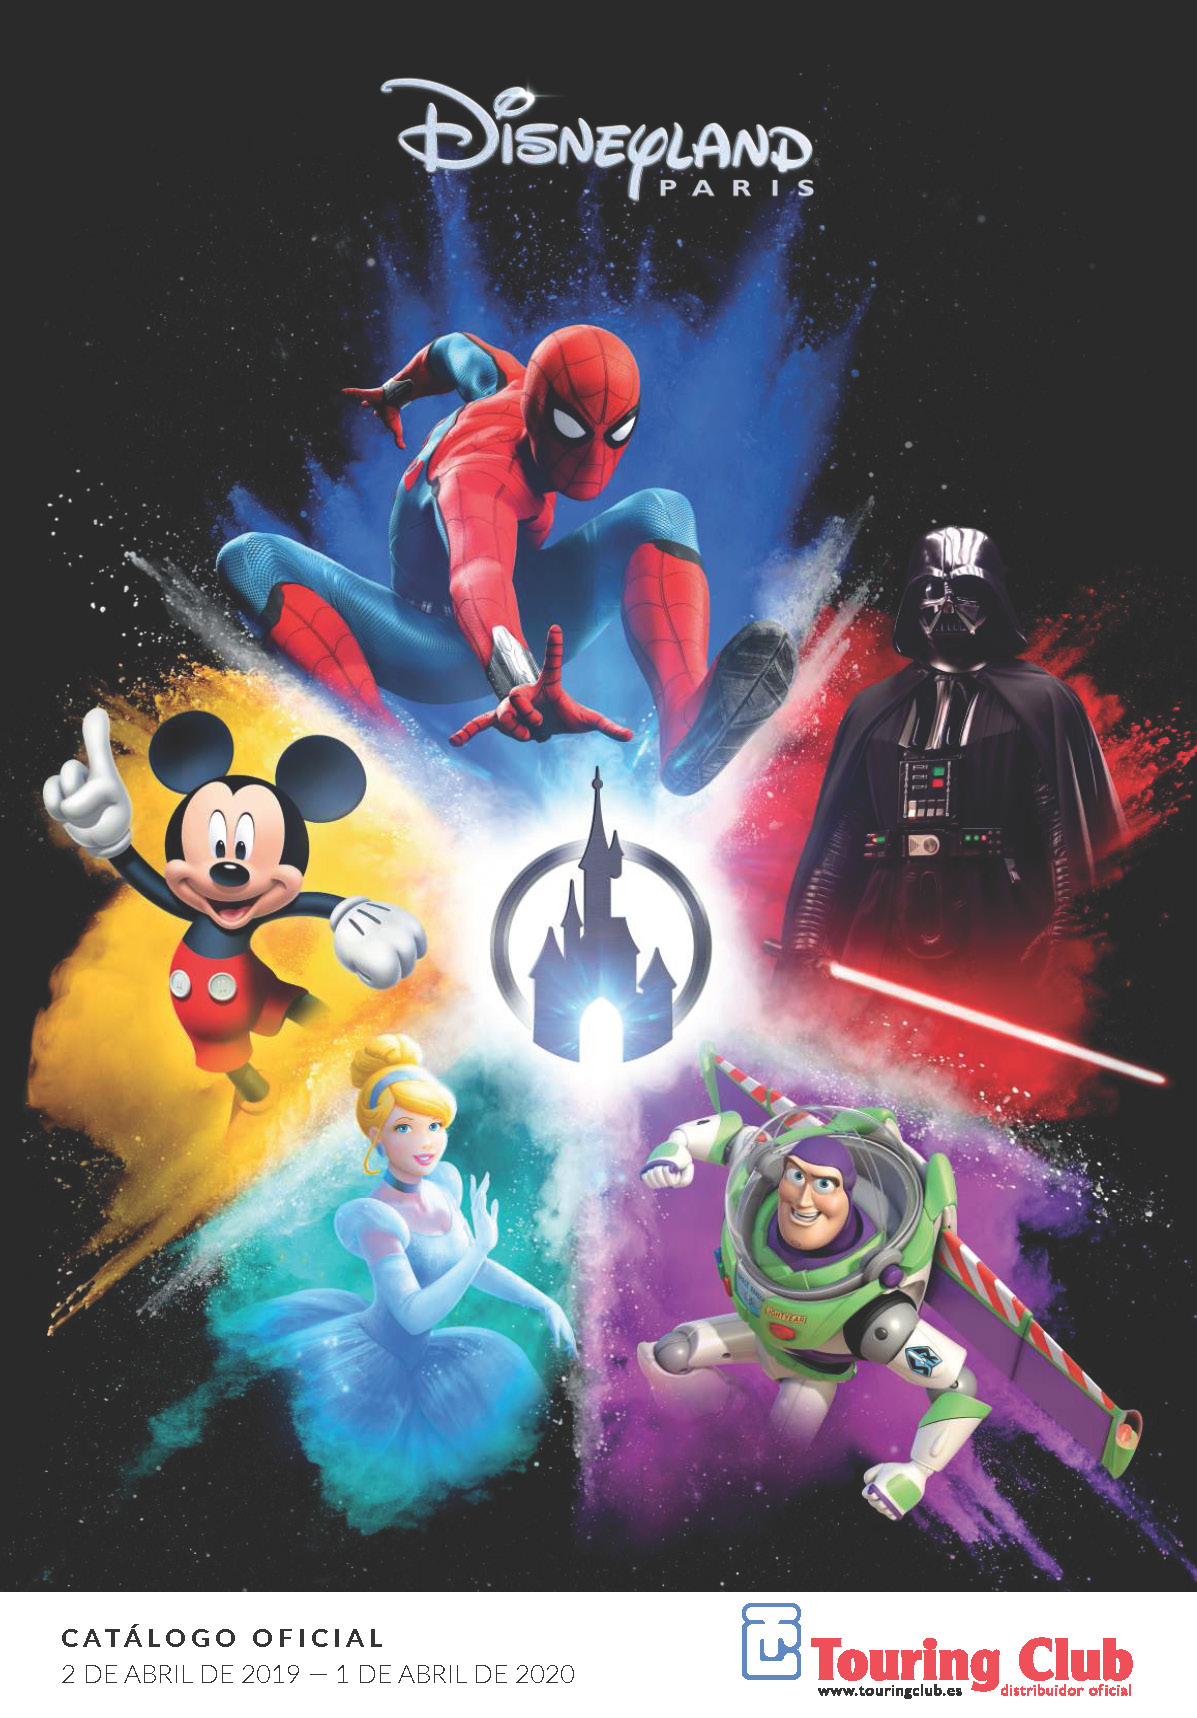 Catalogo Touring Club Disneyland París 2019-2020